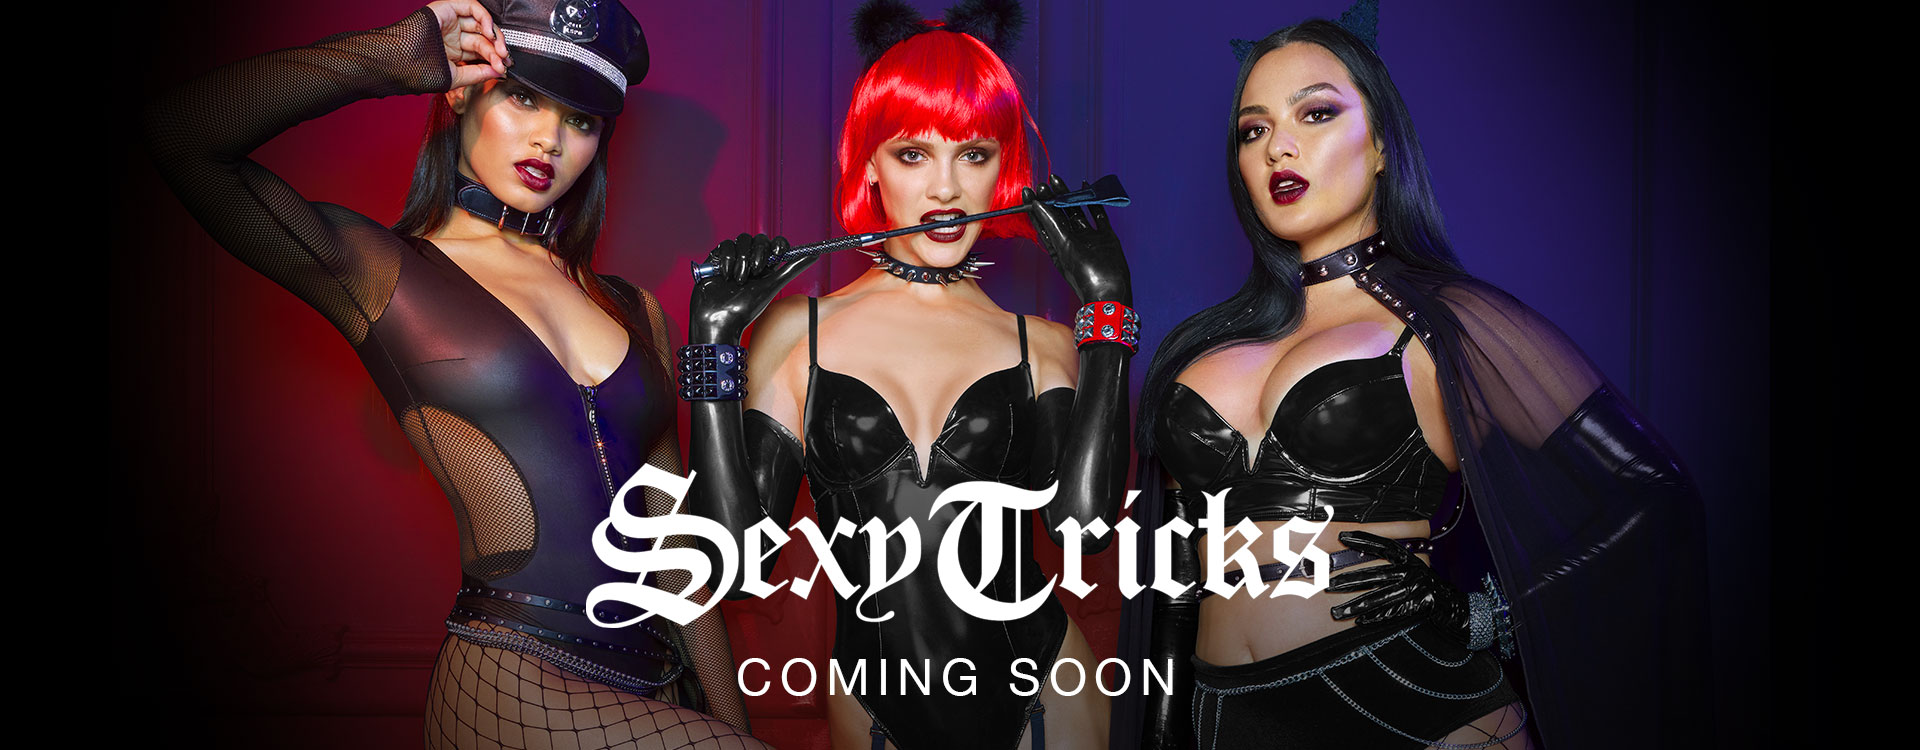 Sexy Tricks. Coming Soon.